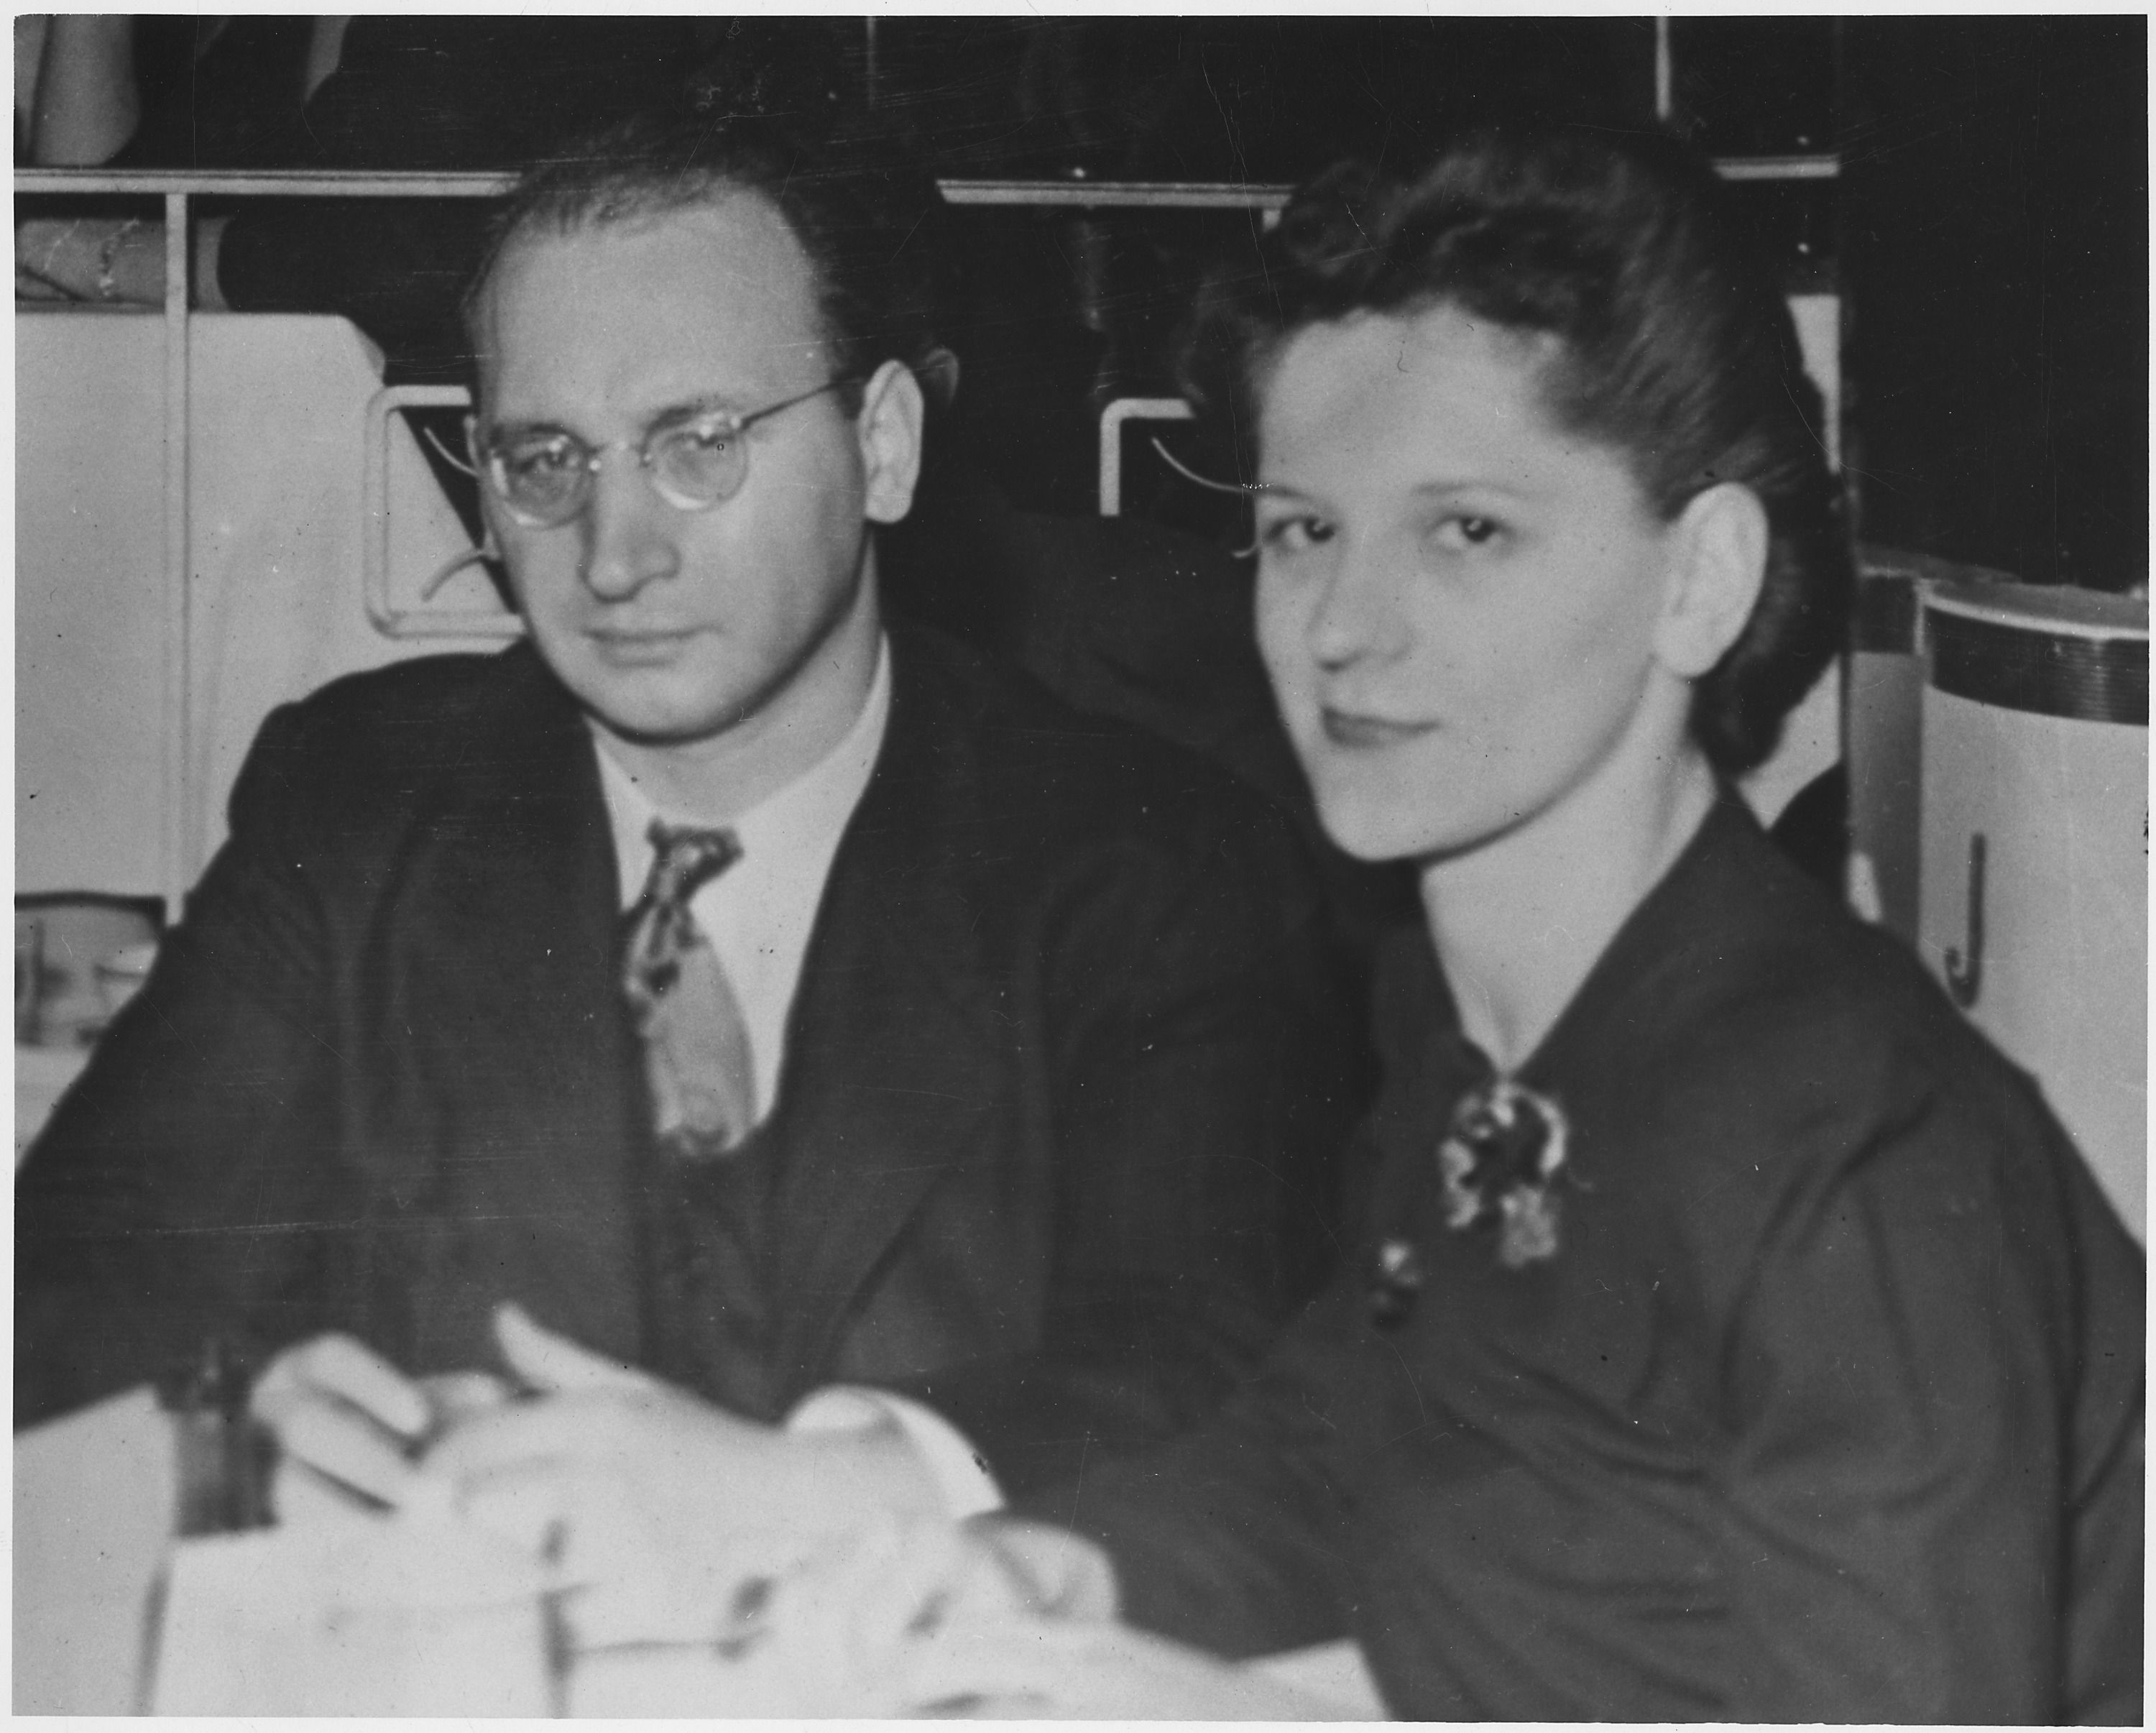 ethel and julius rosenberg - Google Search | Julius and Ethel ...